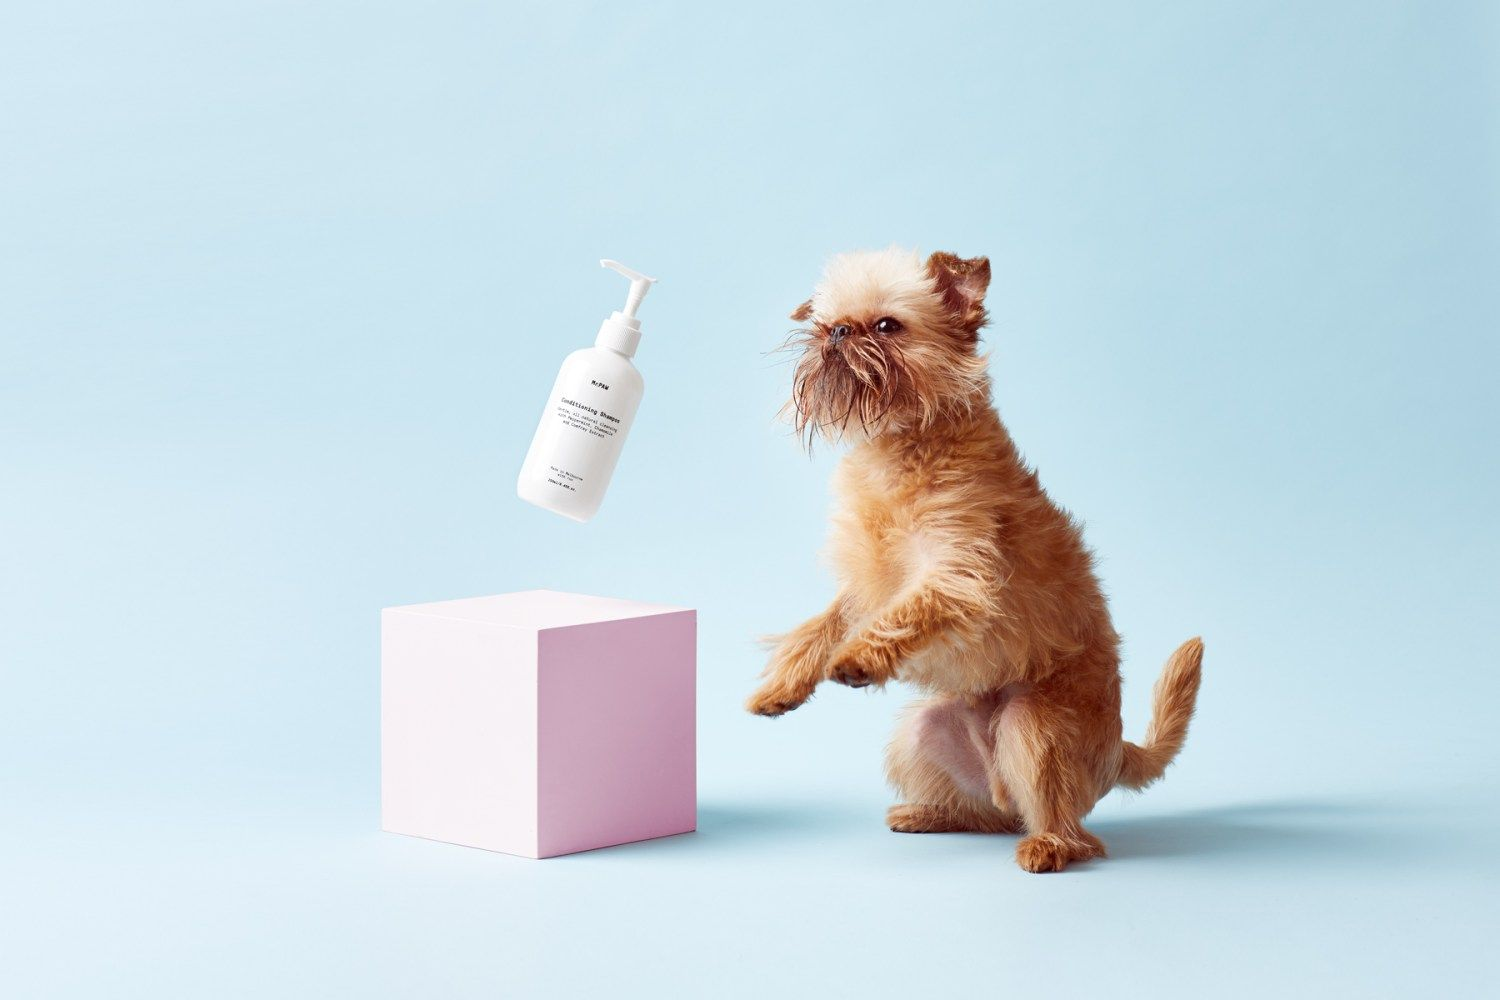 Conditioner clipart dog shampoo. Mr paw is a